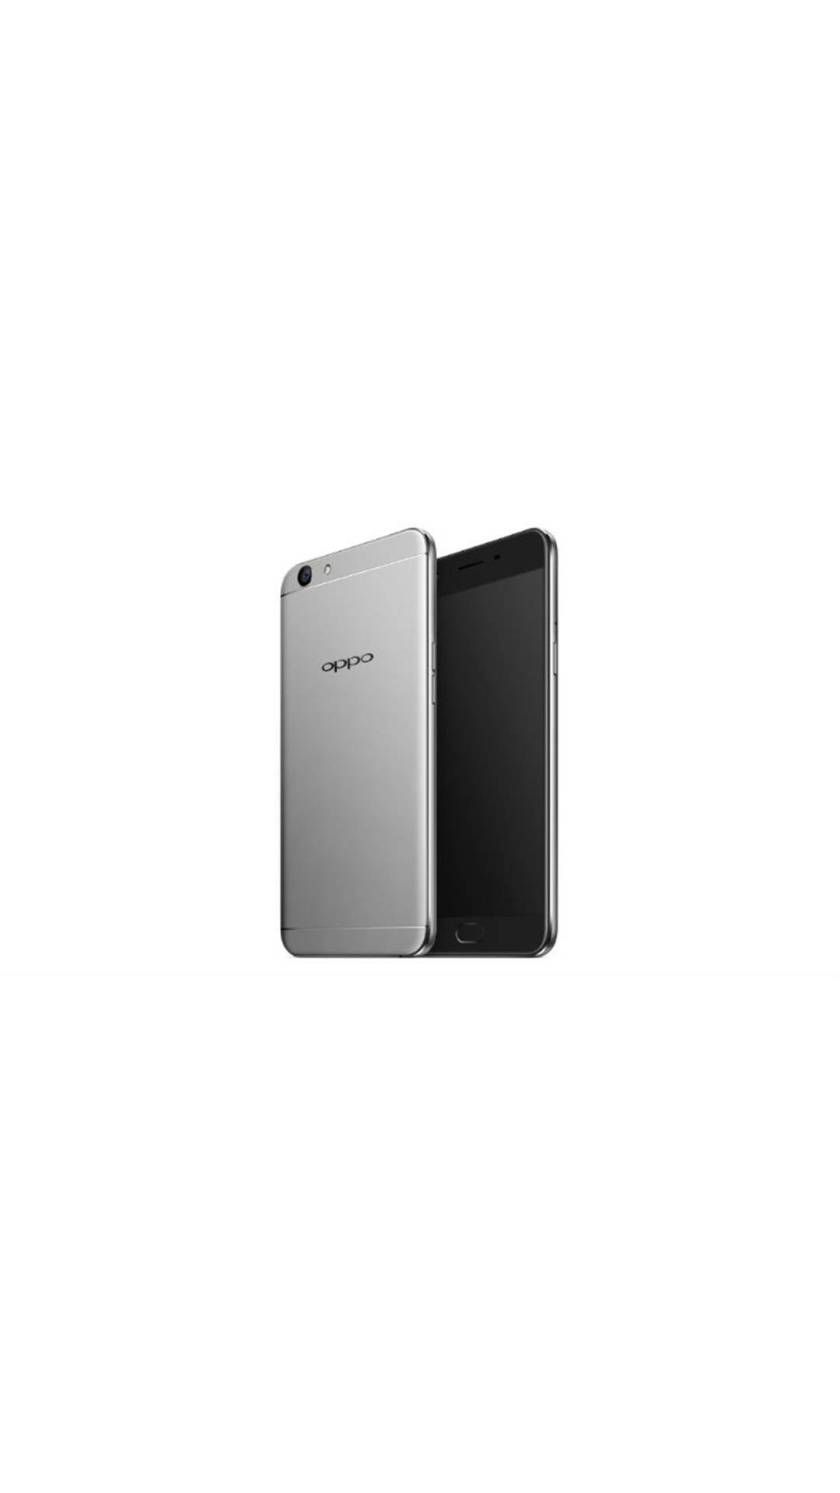 Oppo F1s 64gb Grey Rs16375 After Cashback Freekabalance New